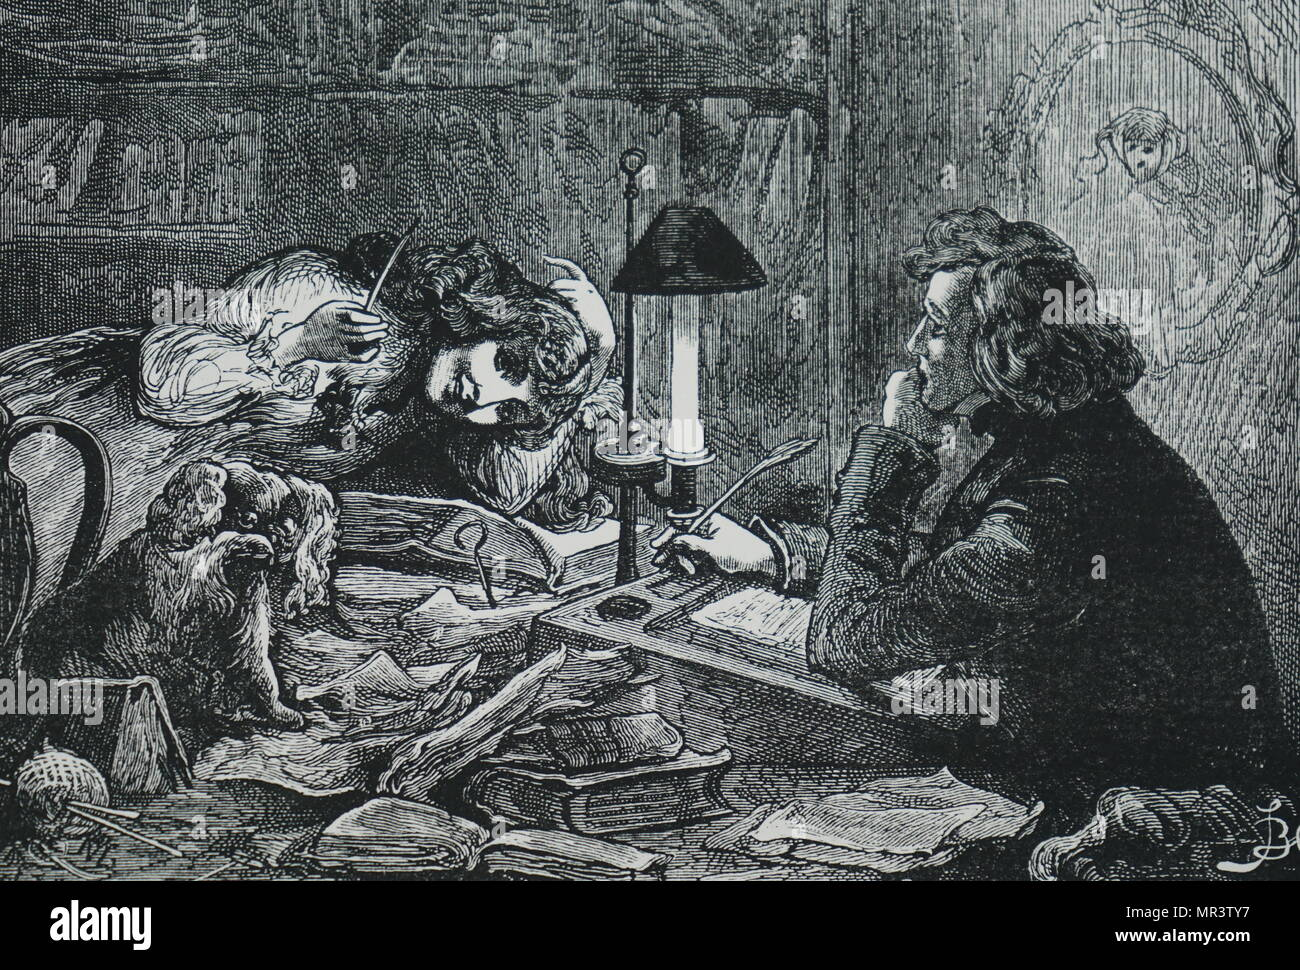 david copperfield dickens characters